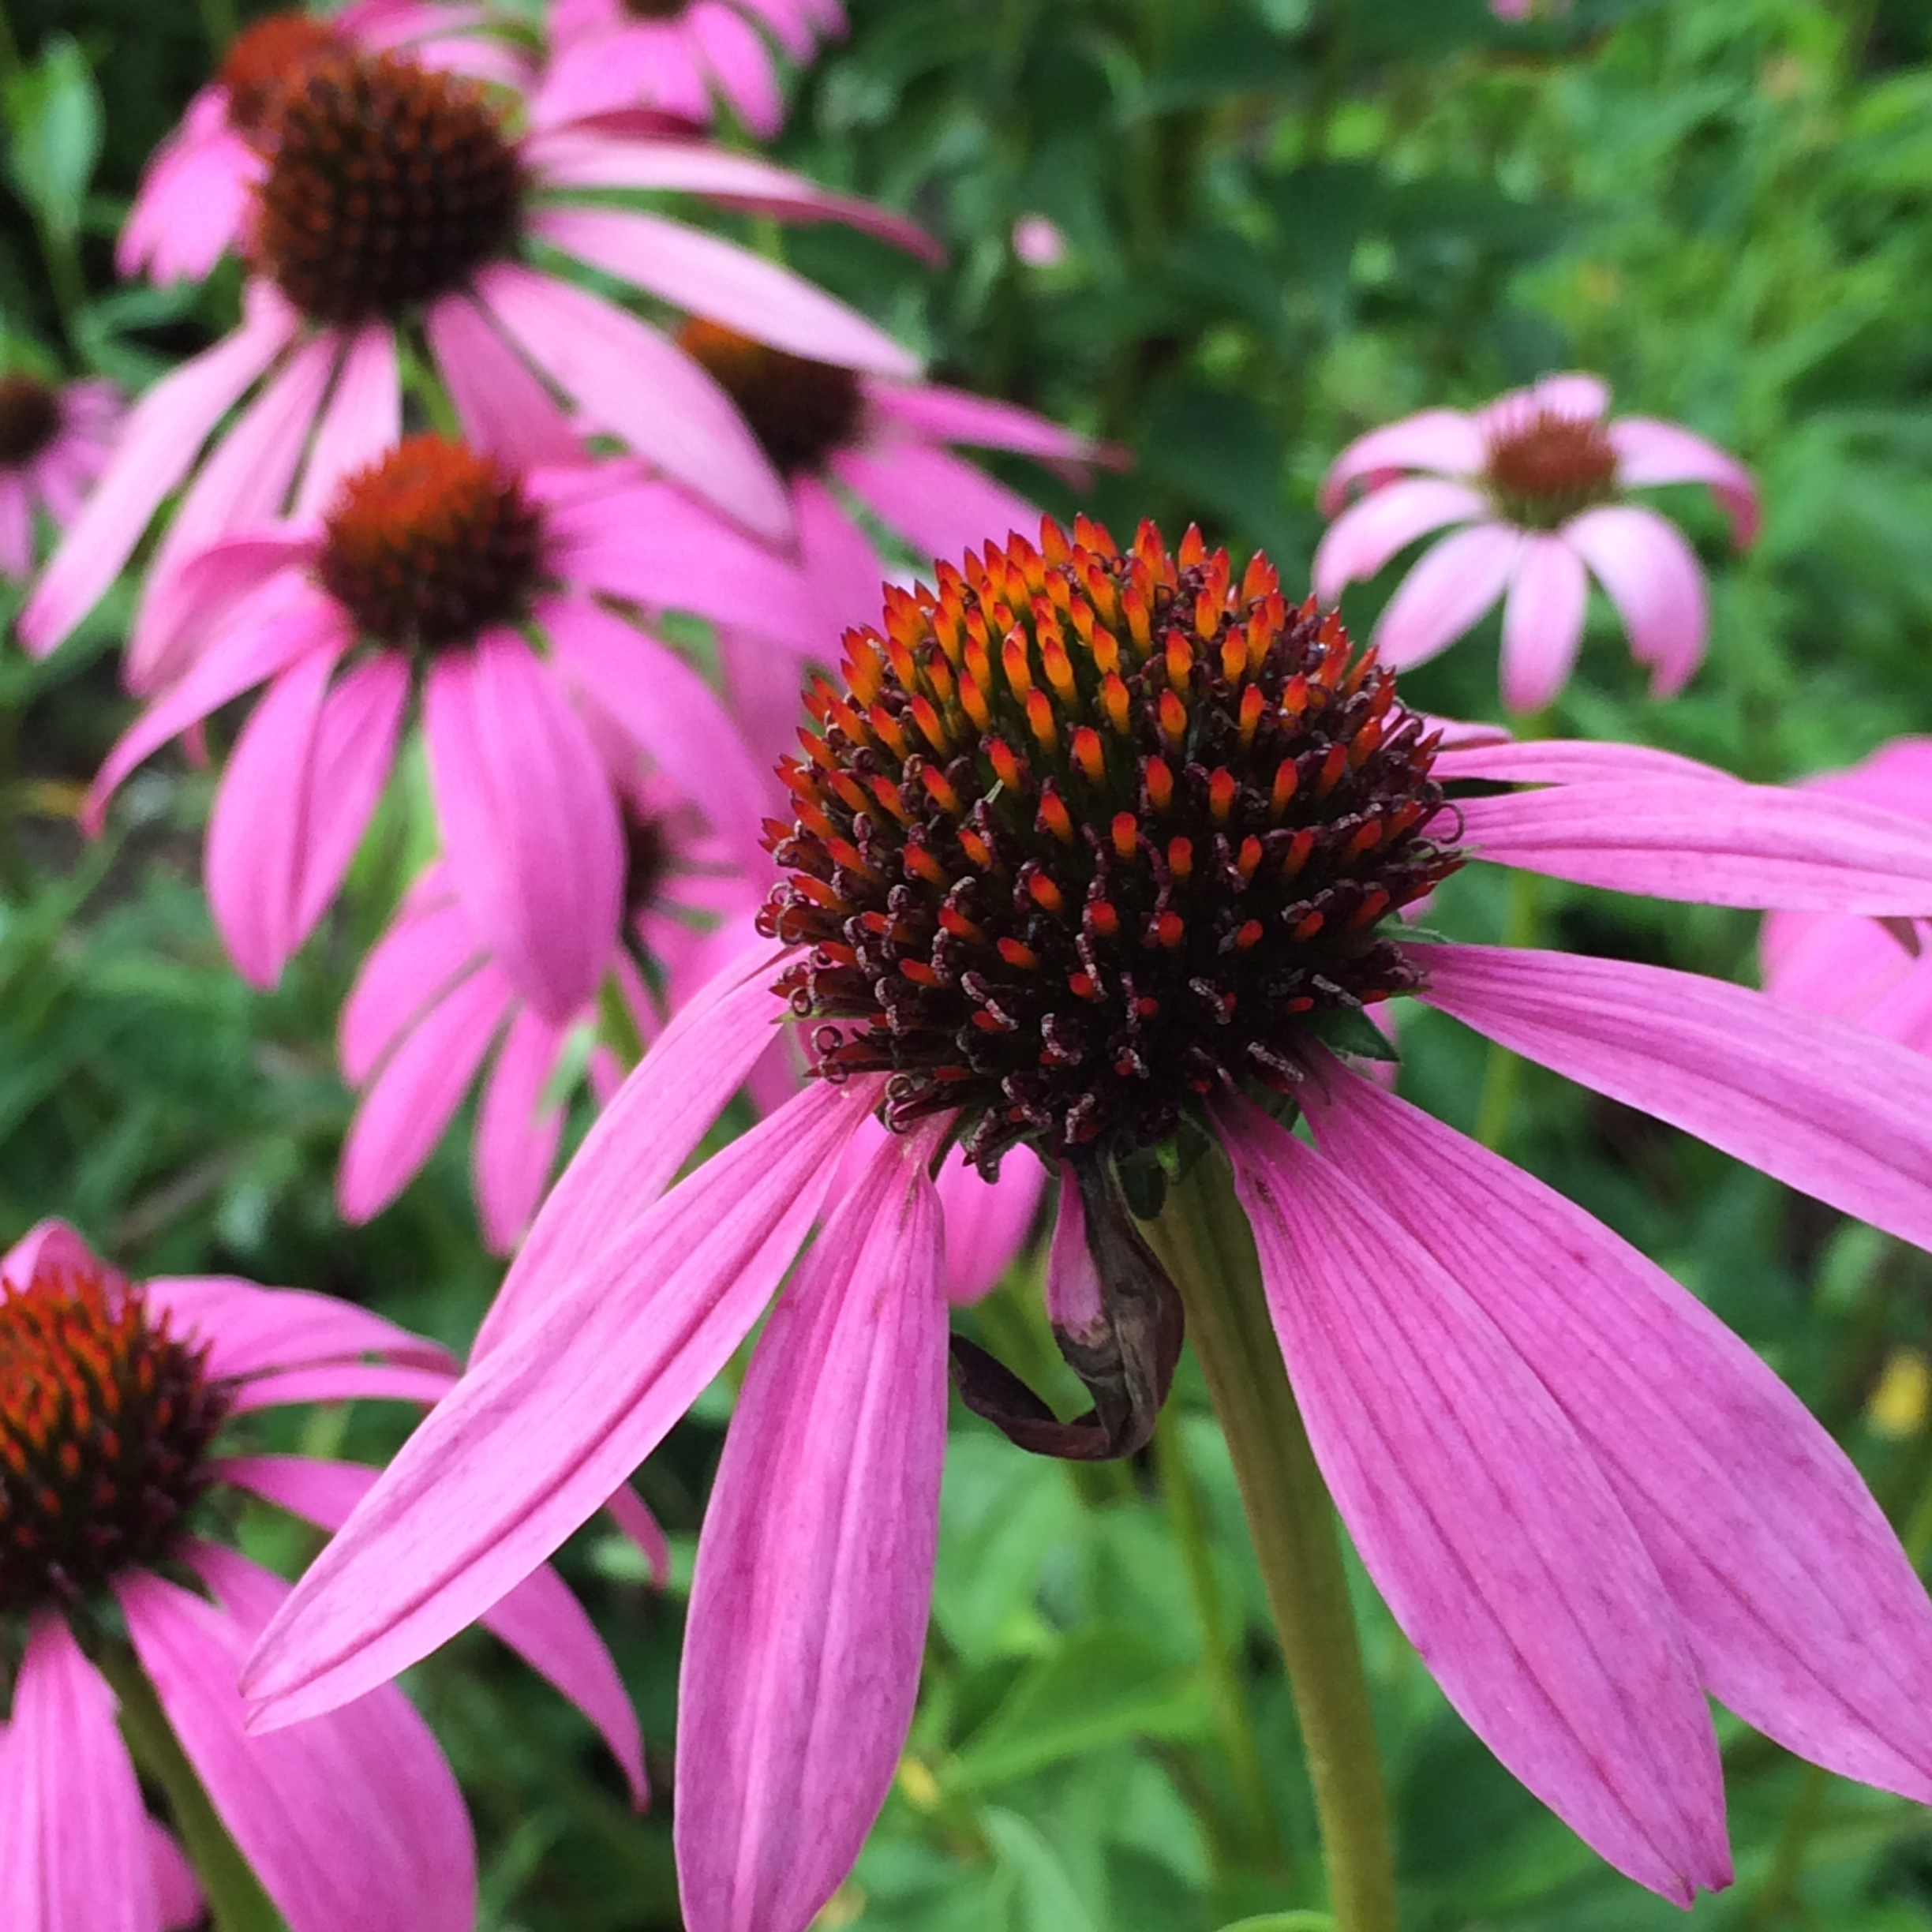 Top 10 hardworking plants for herbaceous borders jardin echinacea long lasting self supporting daisy like flowers make an impact in a border izmirmasajfo